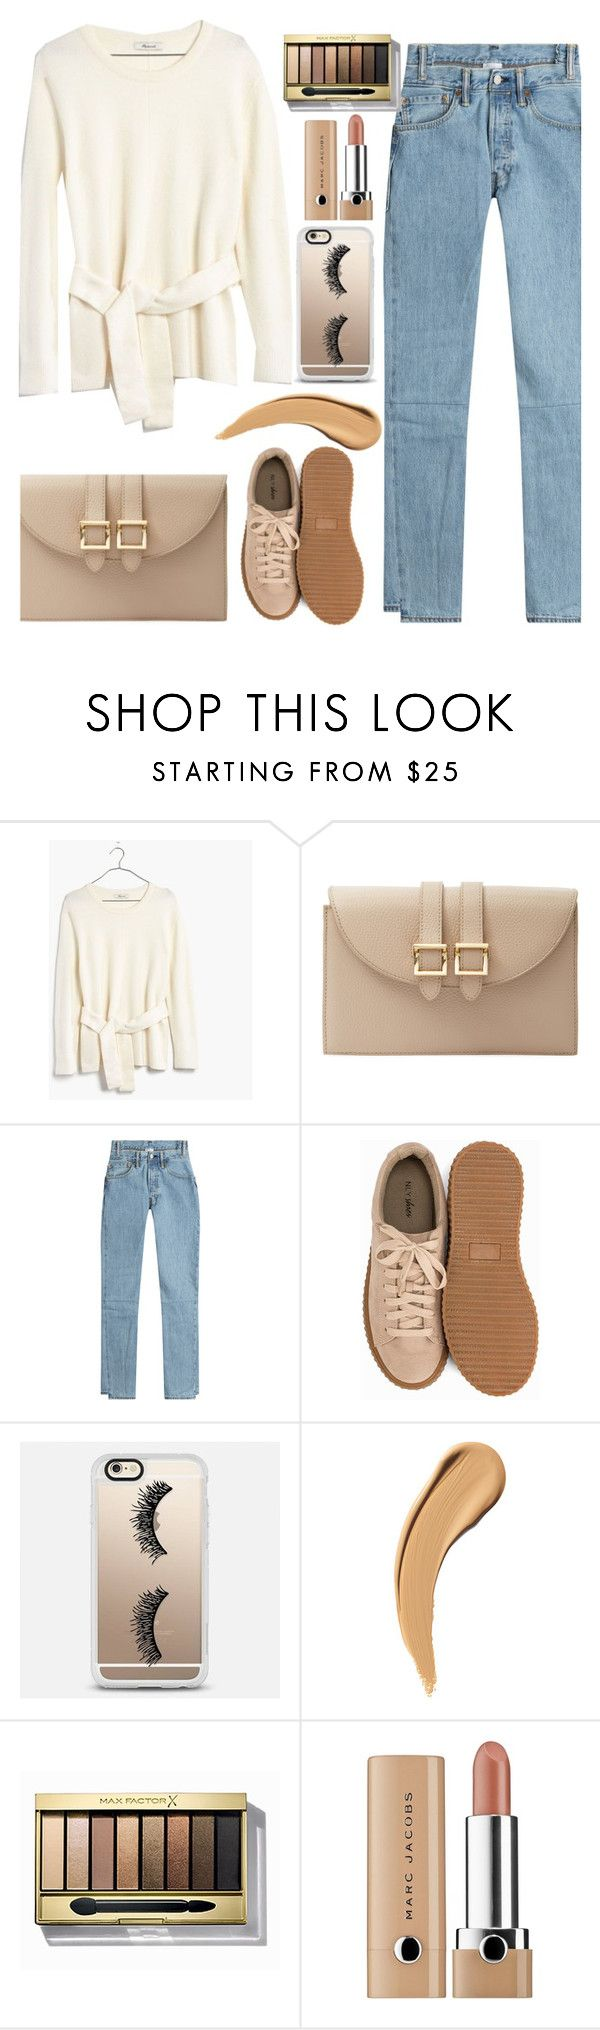 """Nudes.Nudes and More Nudes"" by felicitysparks ❤ liked on Polyvore featuring Madewell, Meli Melo, Vetements, Nly Shoes, Casetify and Max Factor"